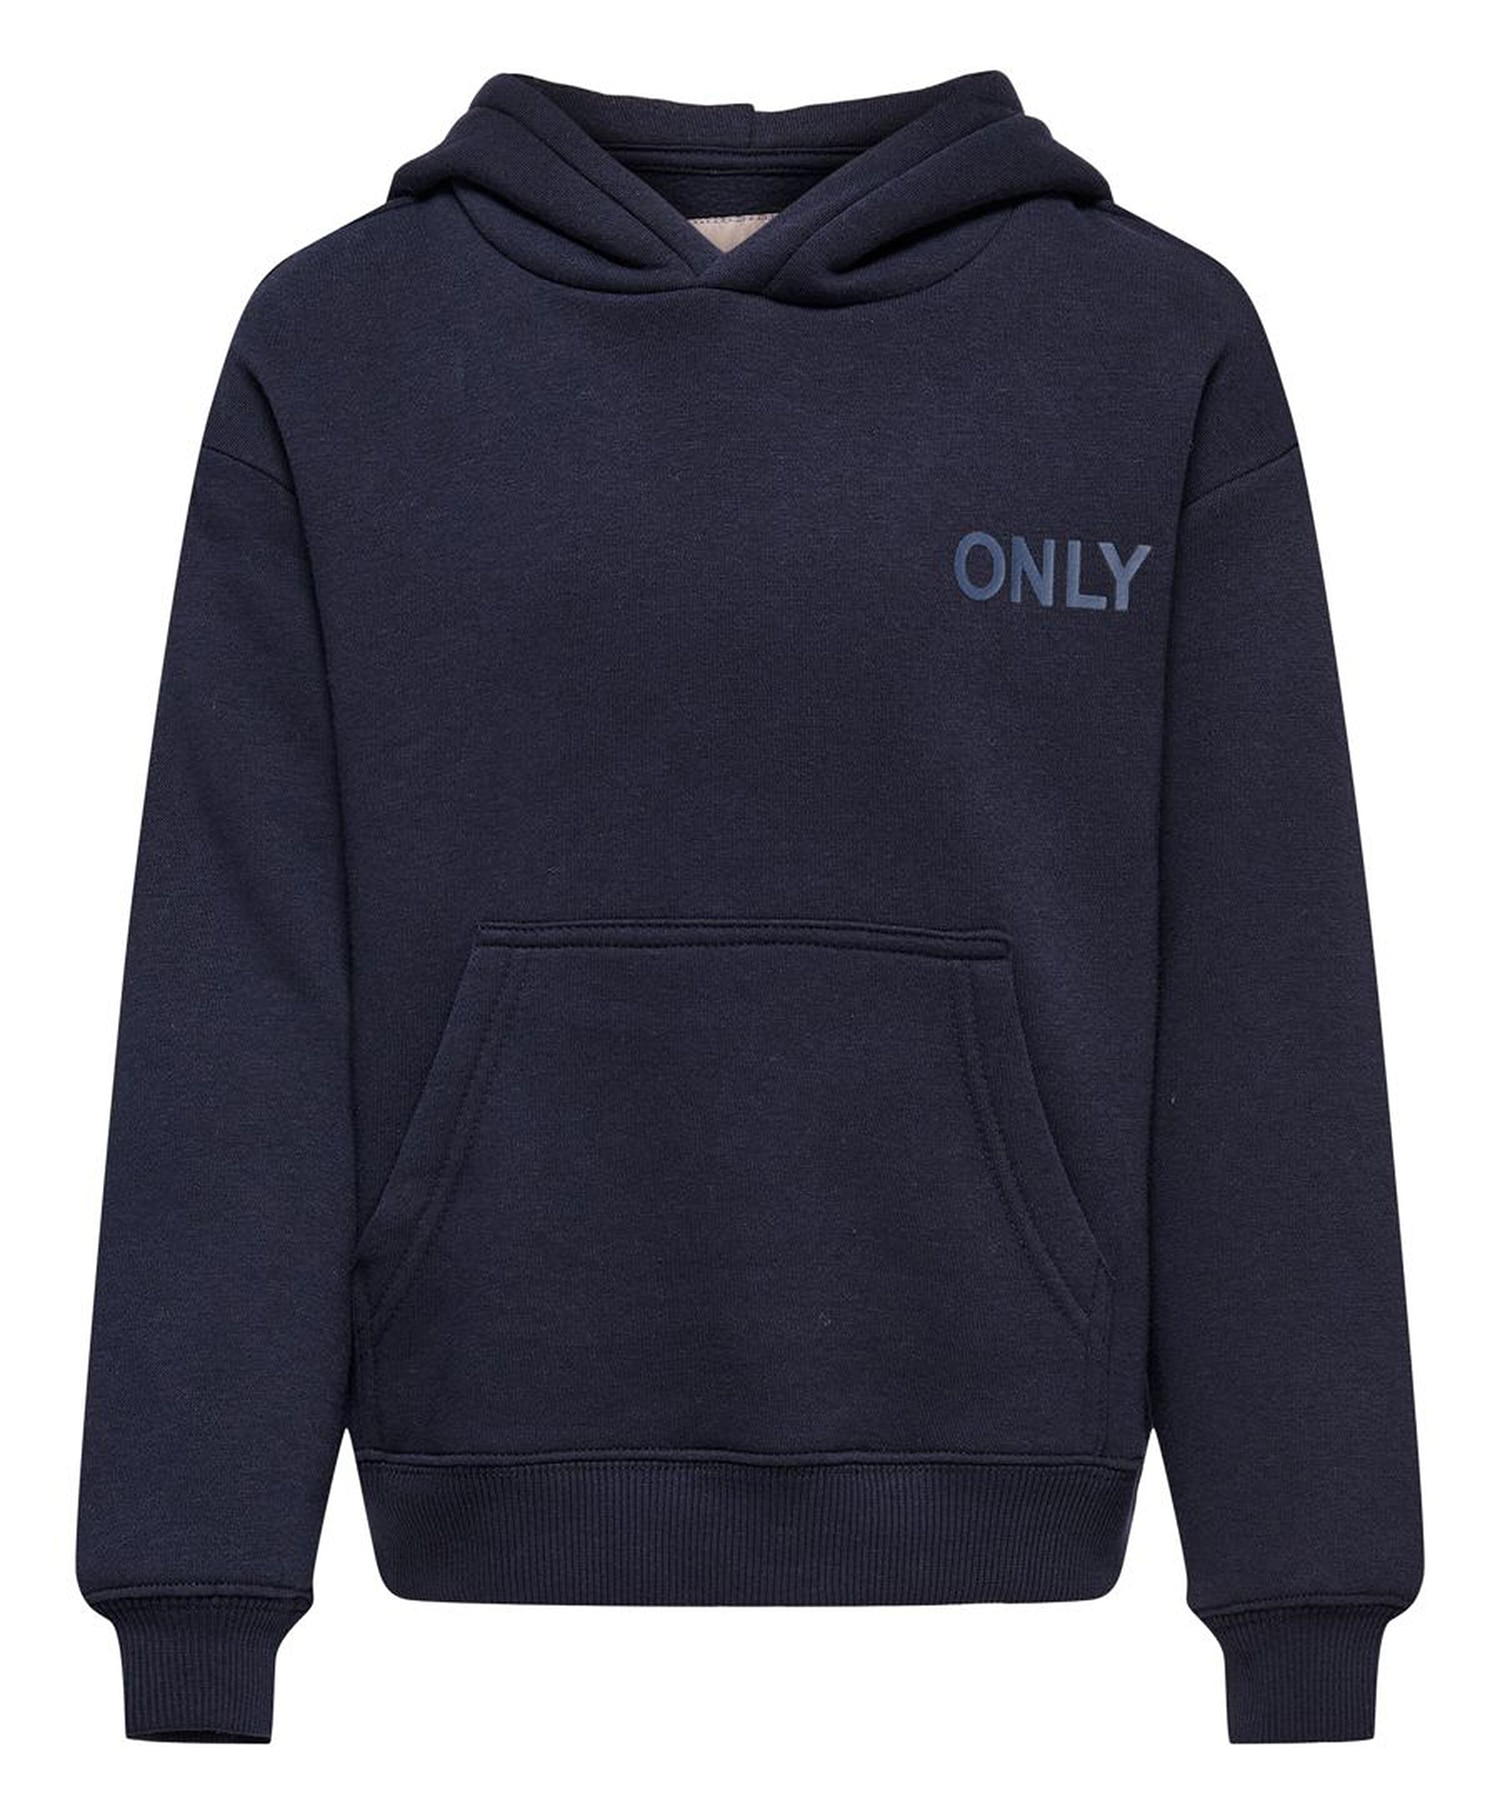 Only KIDS Every Life Hoodie